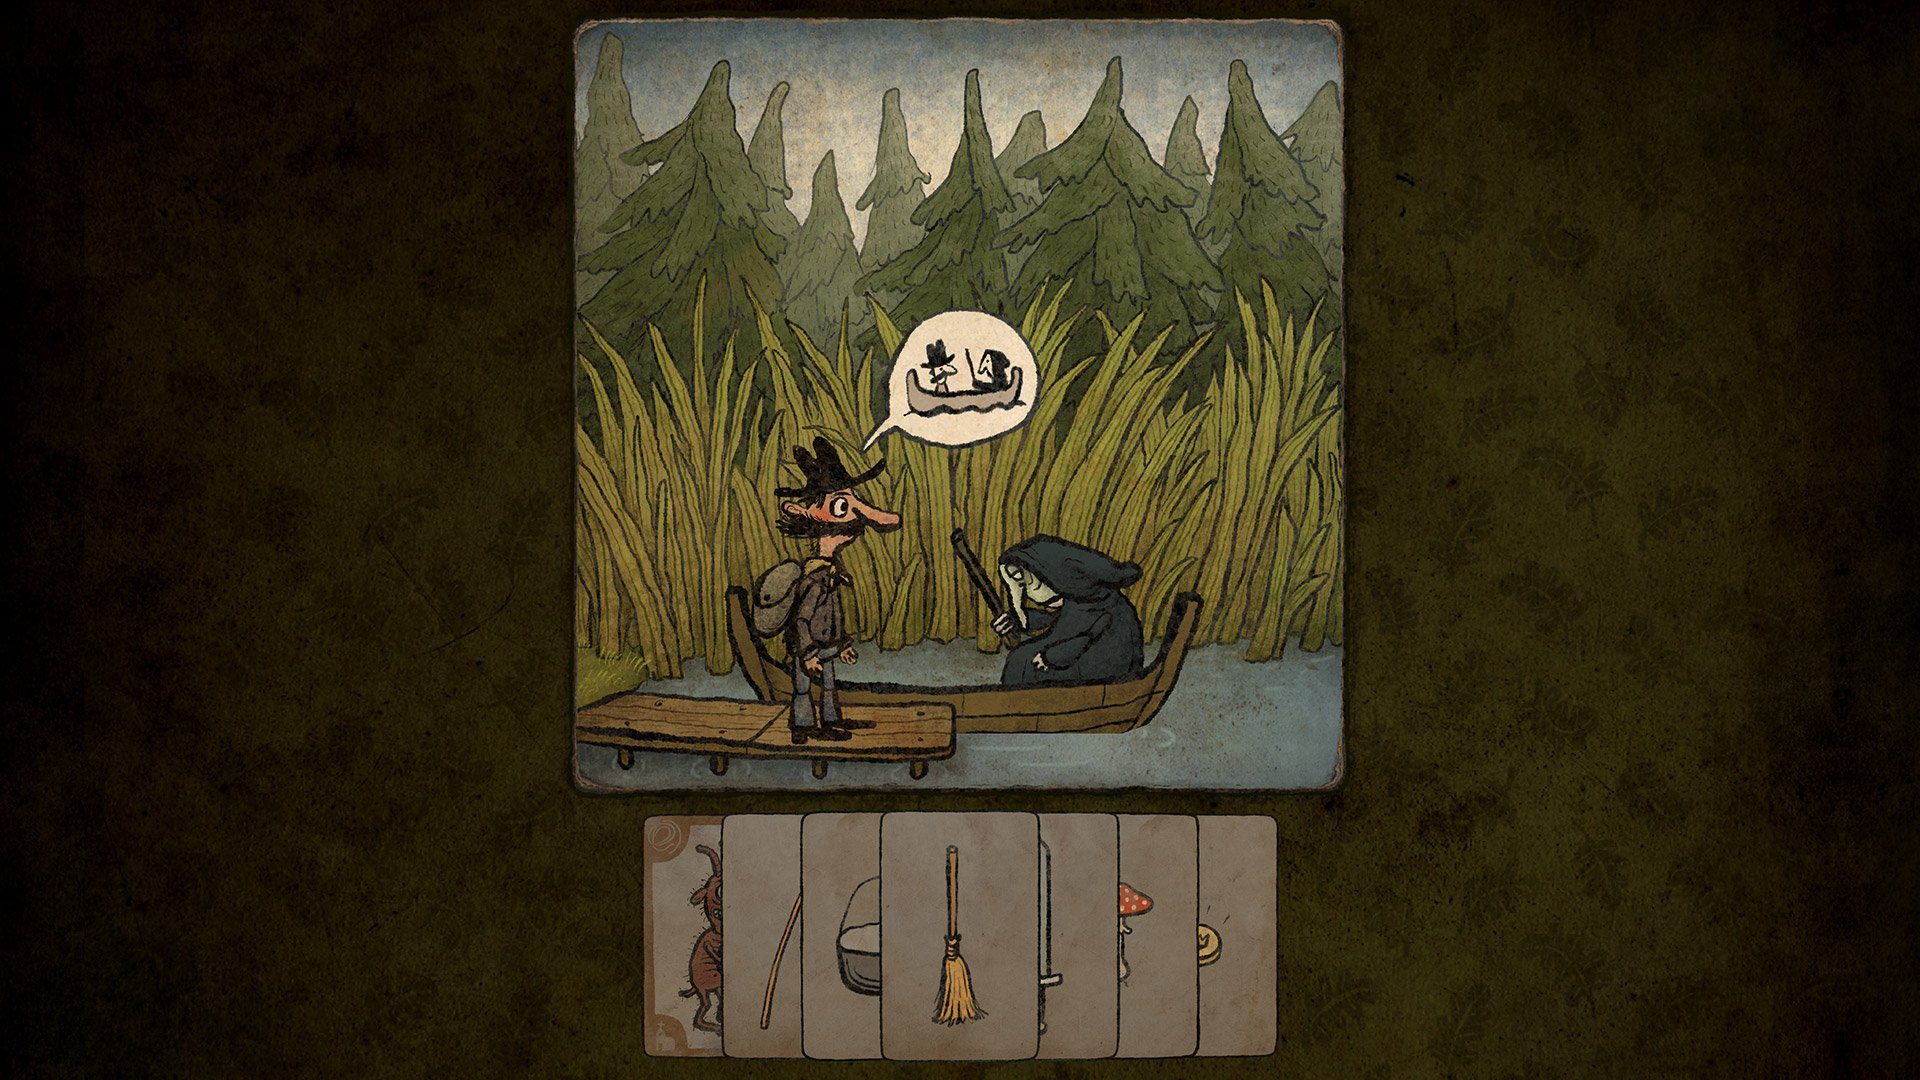 Amanita's latest adventure-game snack, Pilgrims, is out on Apple Arcade and PC screenshot